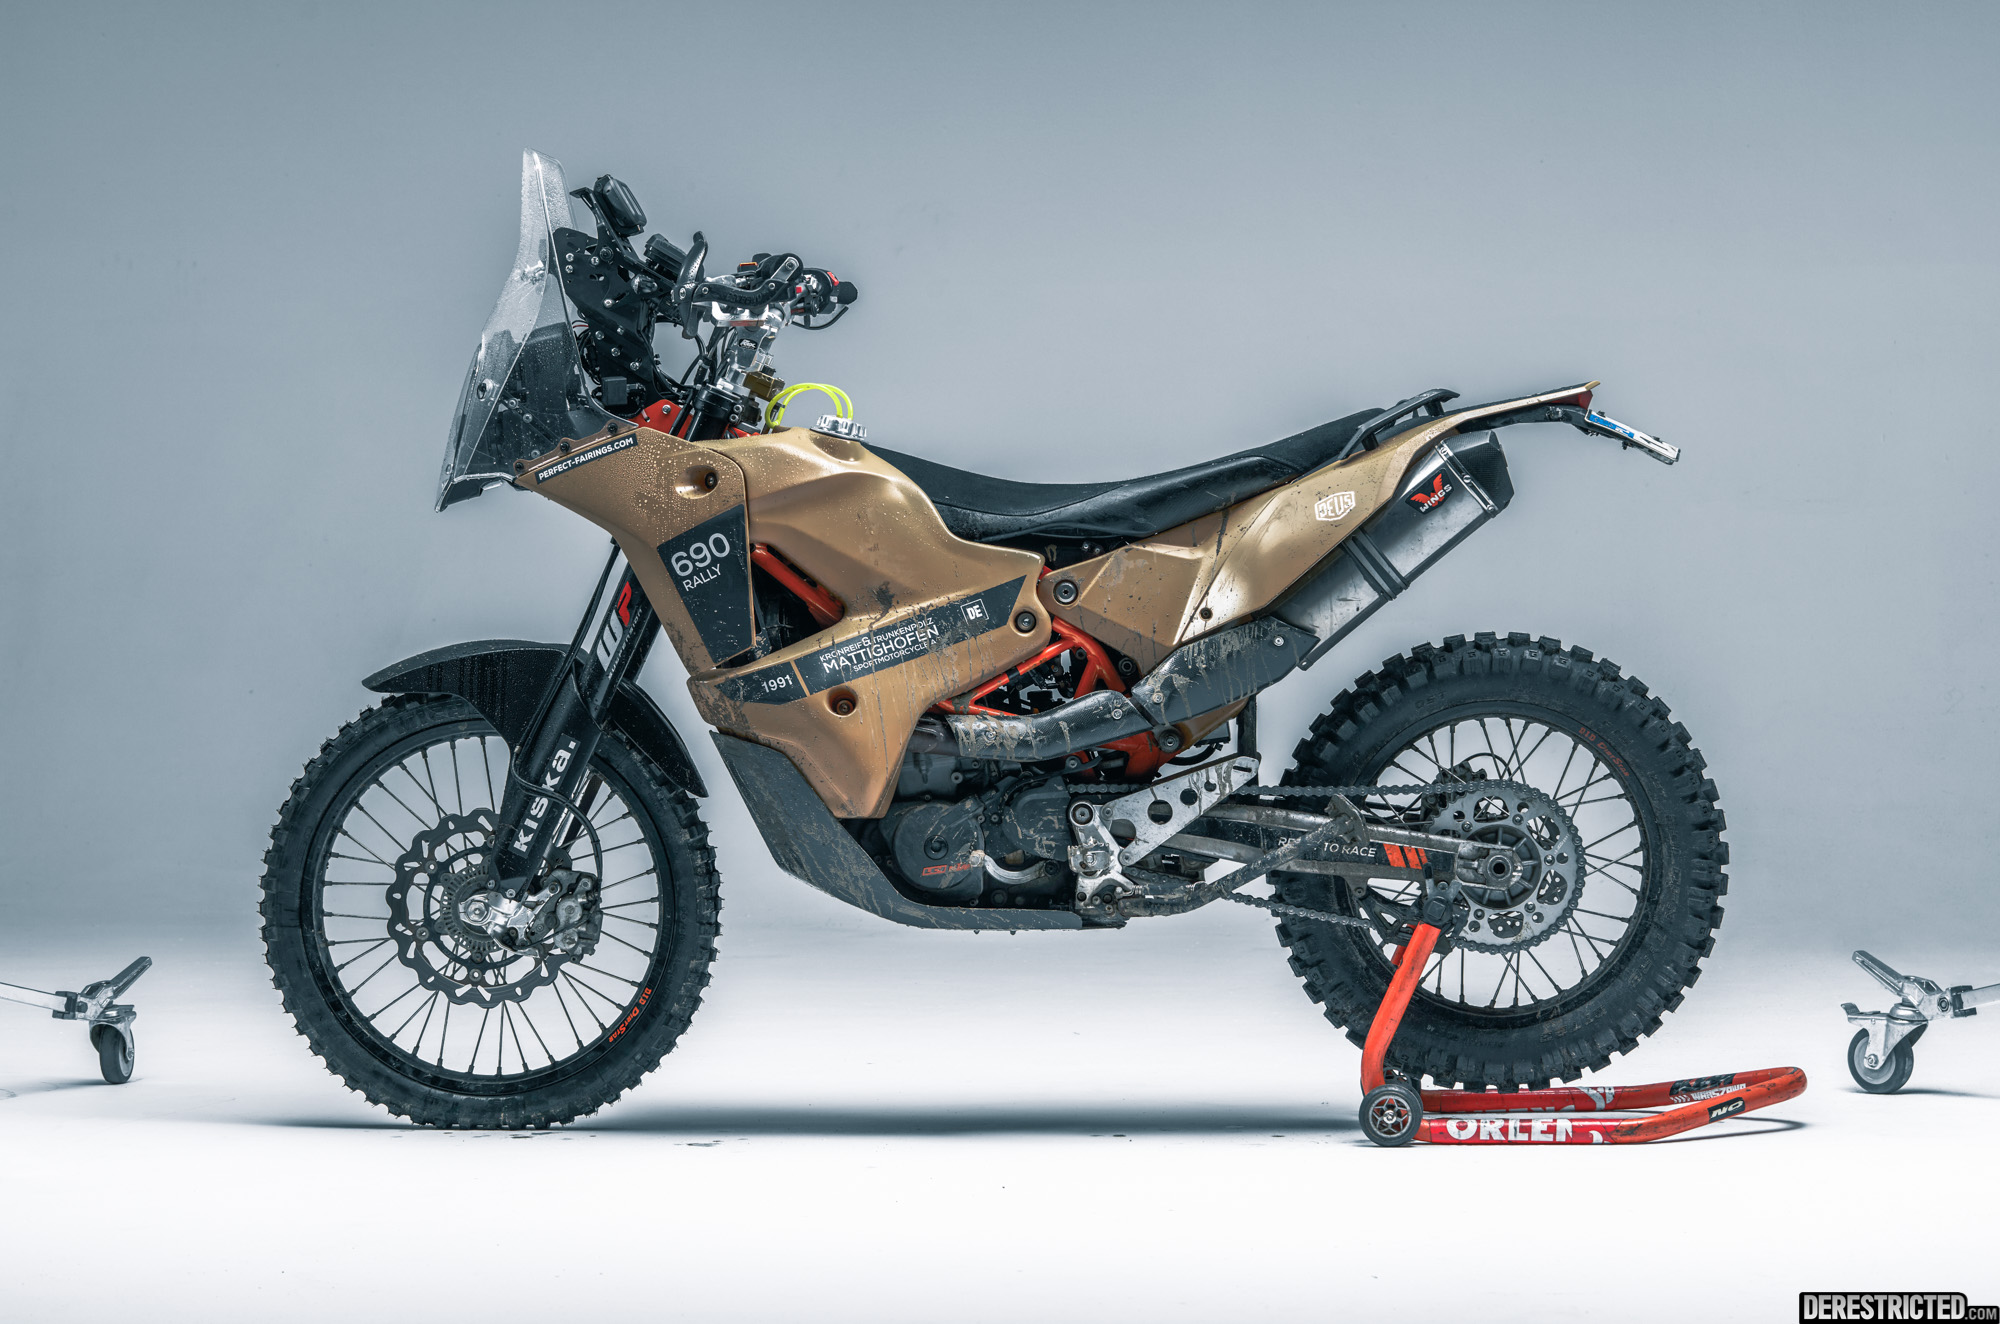 ktm 690 enduro rally custom from rafael gorski derestricted. Black Bedroom Furniture Sets. Home Design Ideas